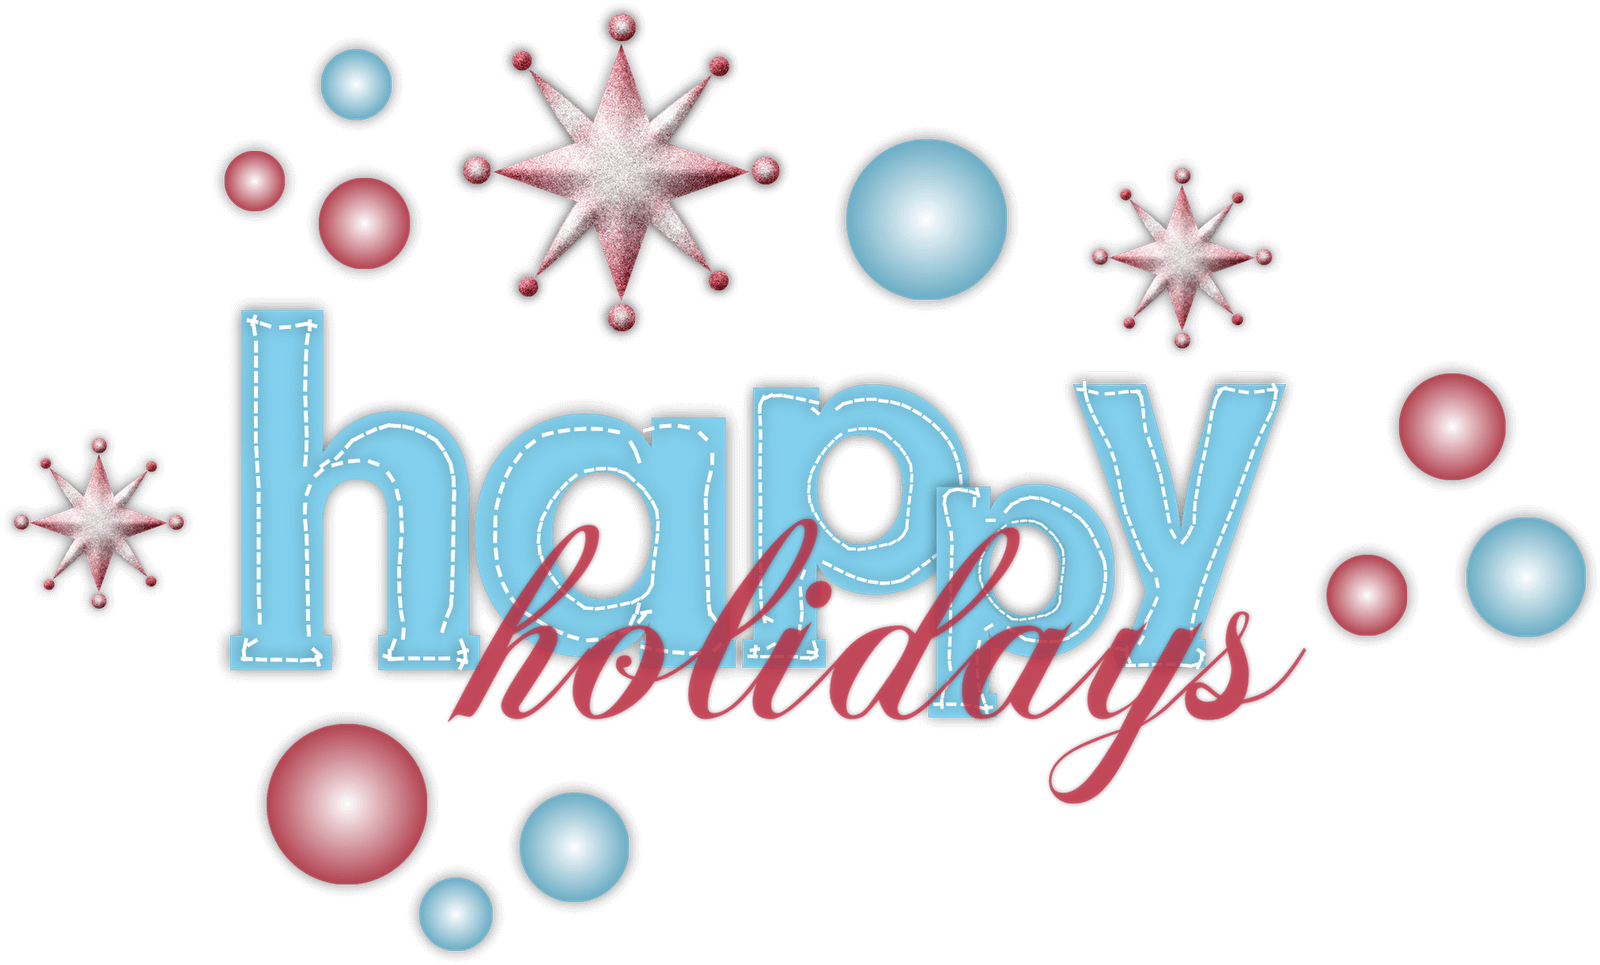 Happy holidays free clipart picture transparent library Happy Holidays Clipart - Clipart Junction picture transparent library